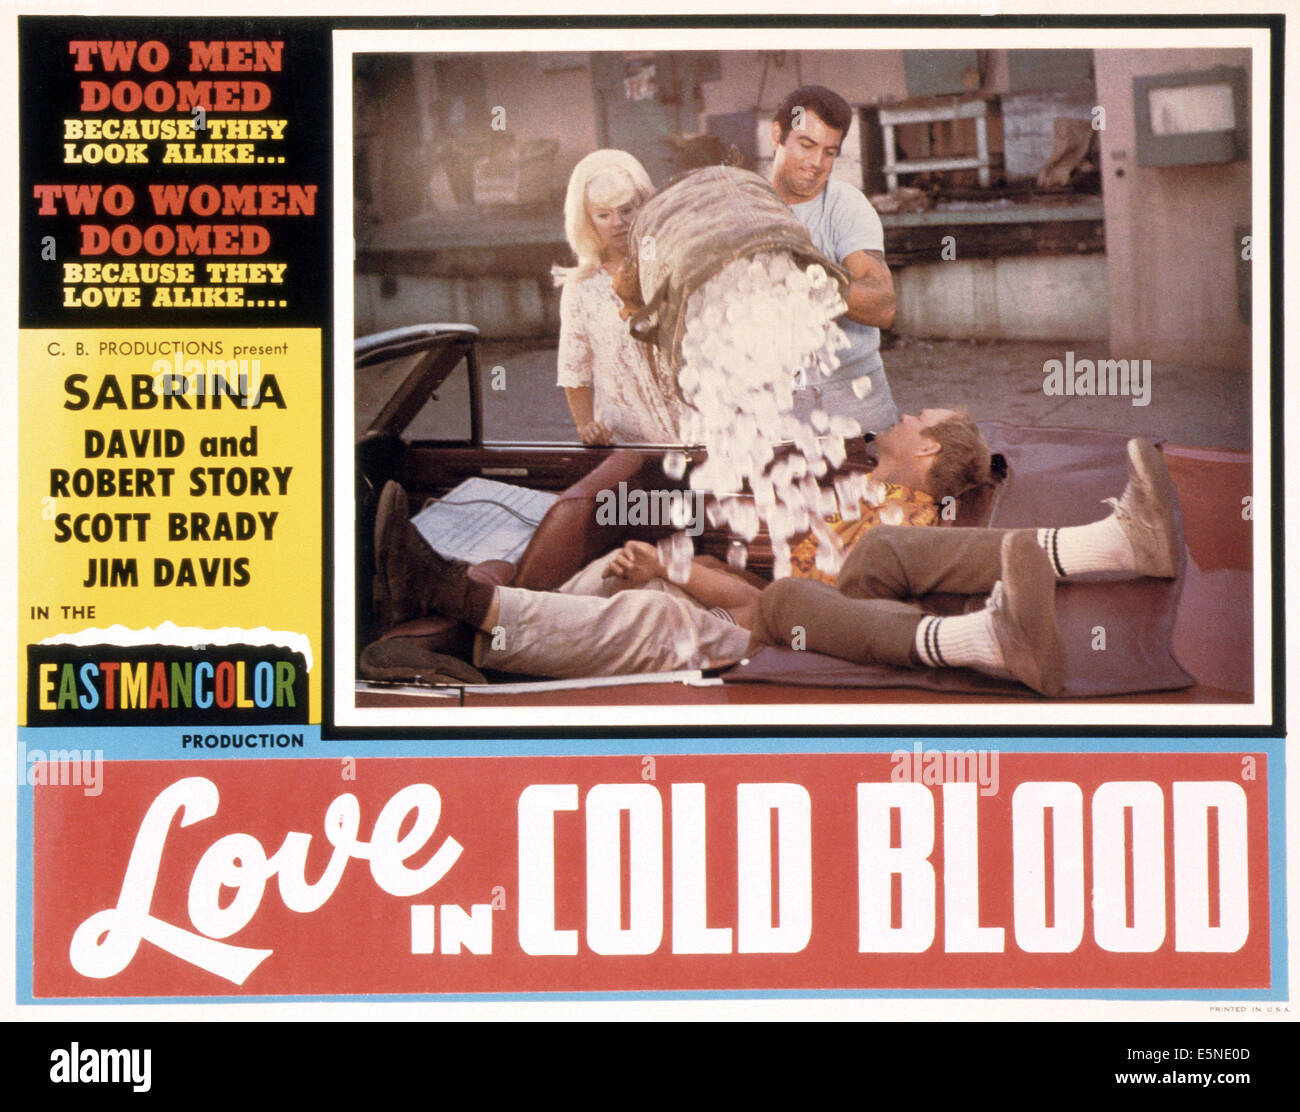 LOVE IN COLD BLOOD, (aka THE ICE HOUSE), 1969 - Stock Image